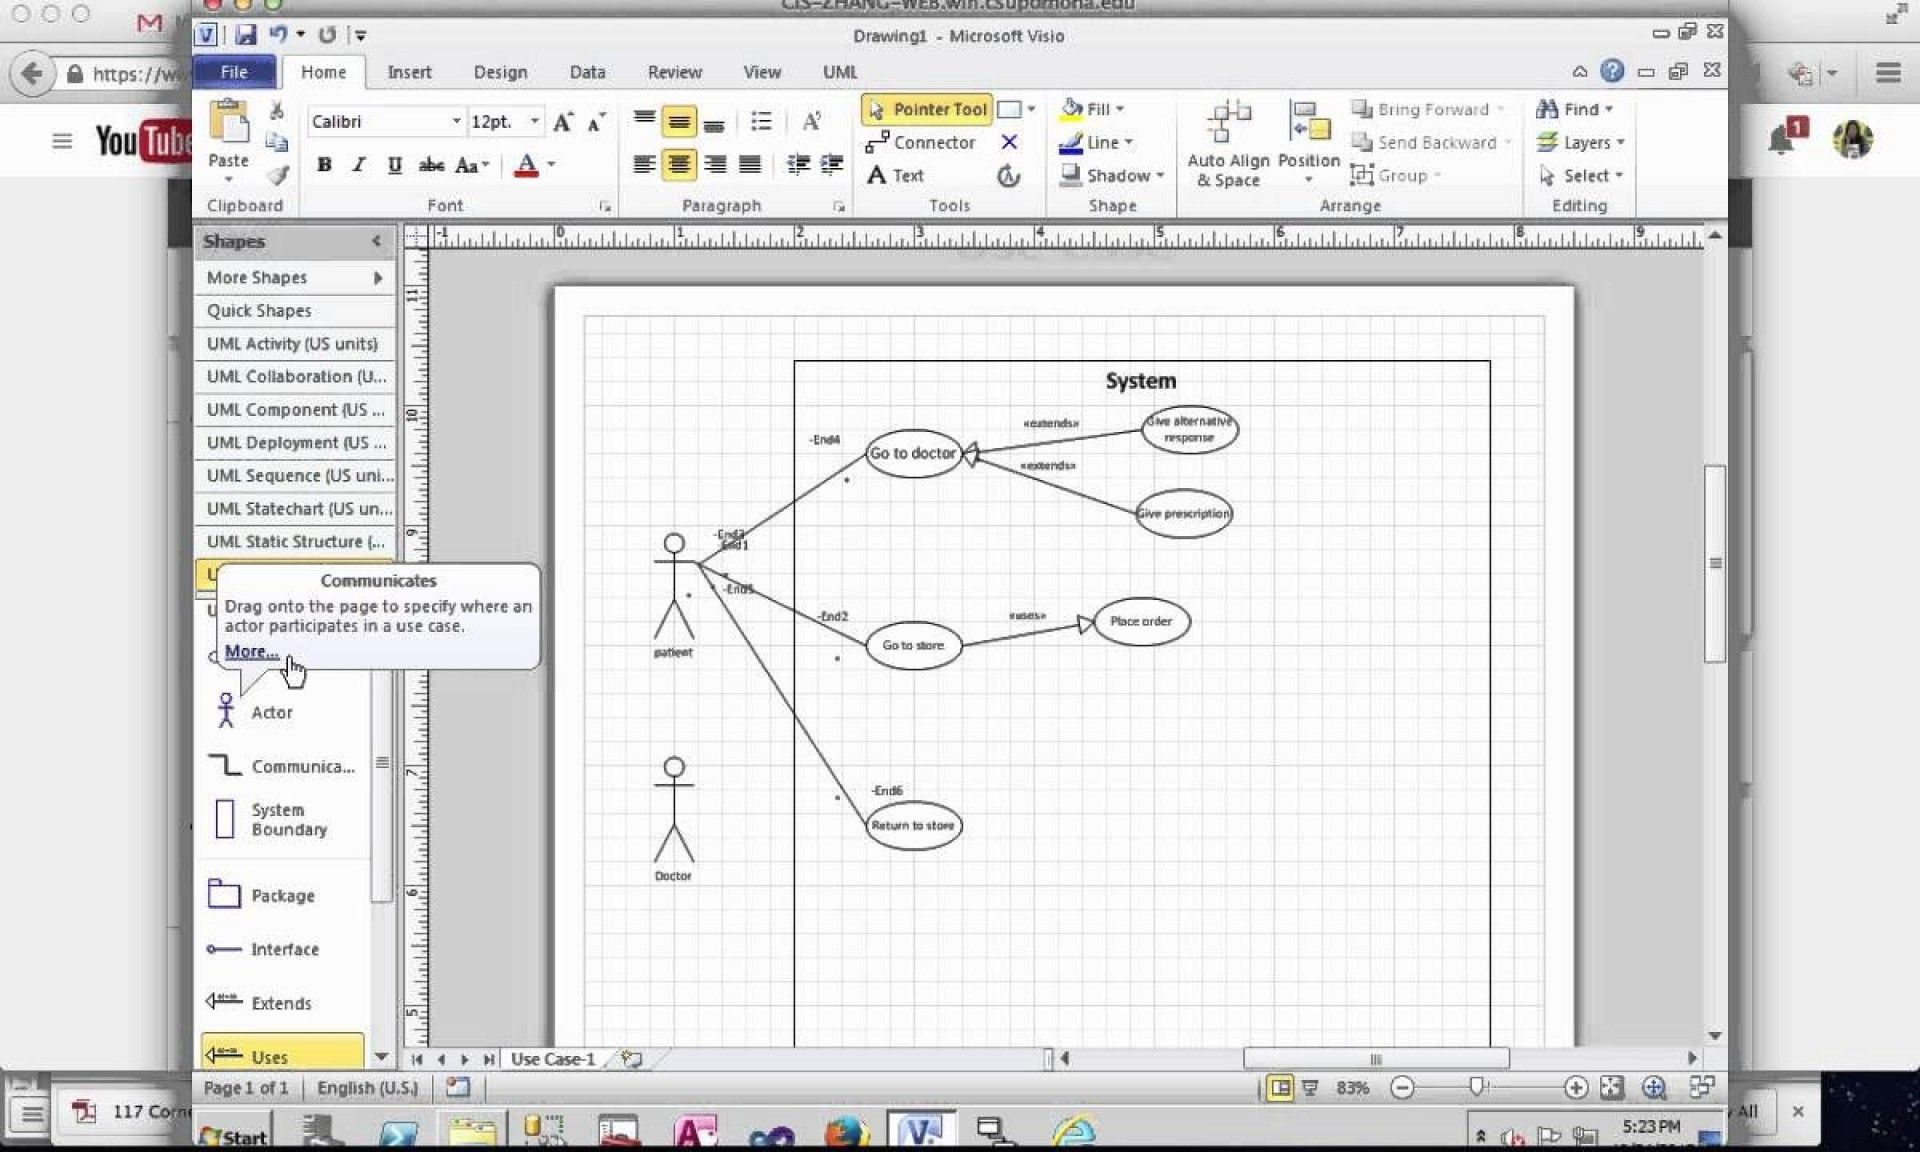 002 Surprising Microsoft Word Use Case Diagram Template Picture 1920